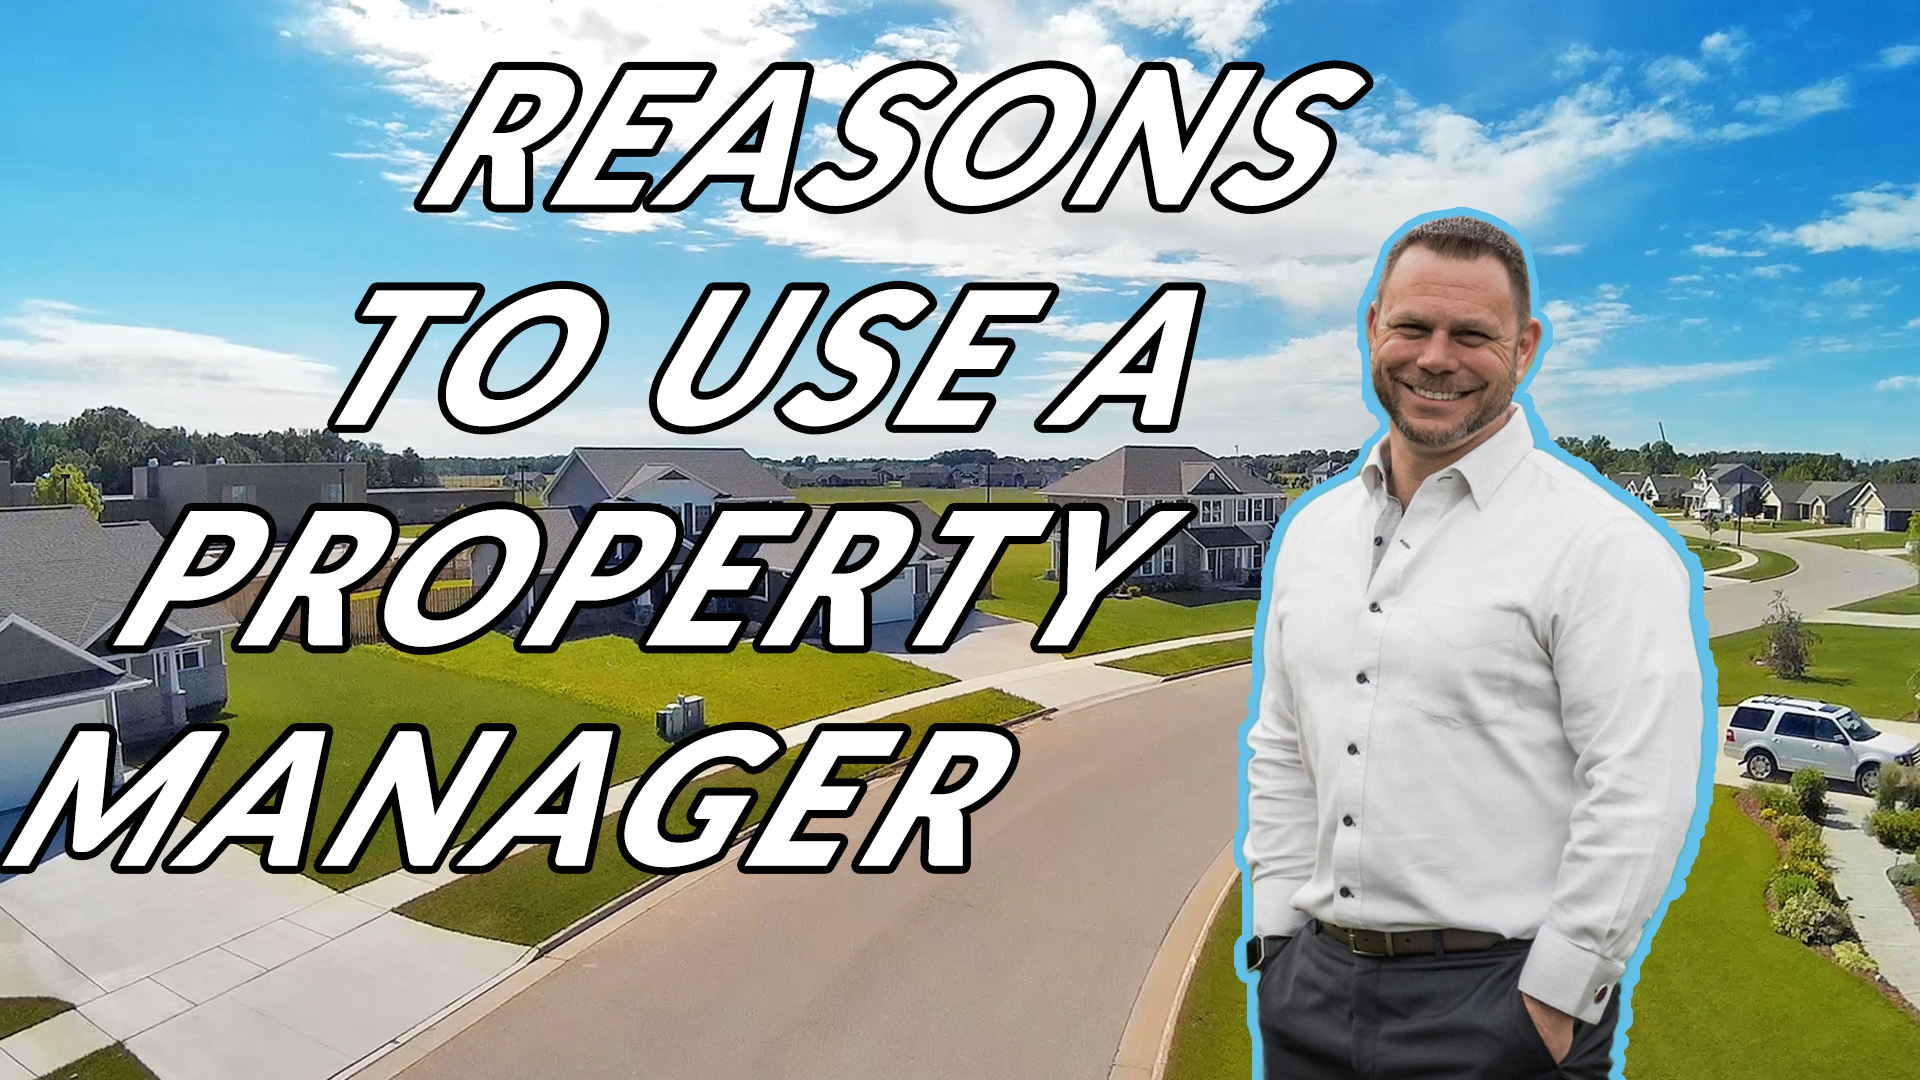 Using A Realtor to Buy Investment Properties/Property Management